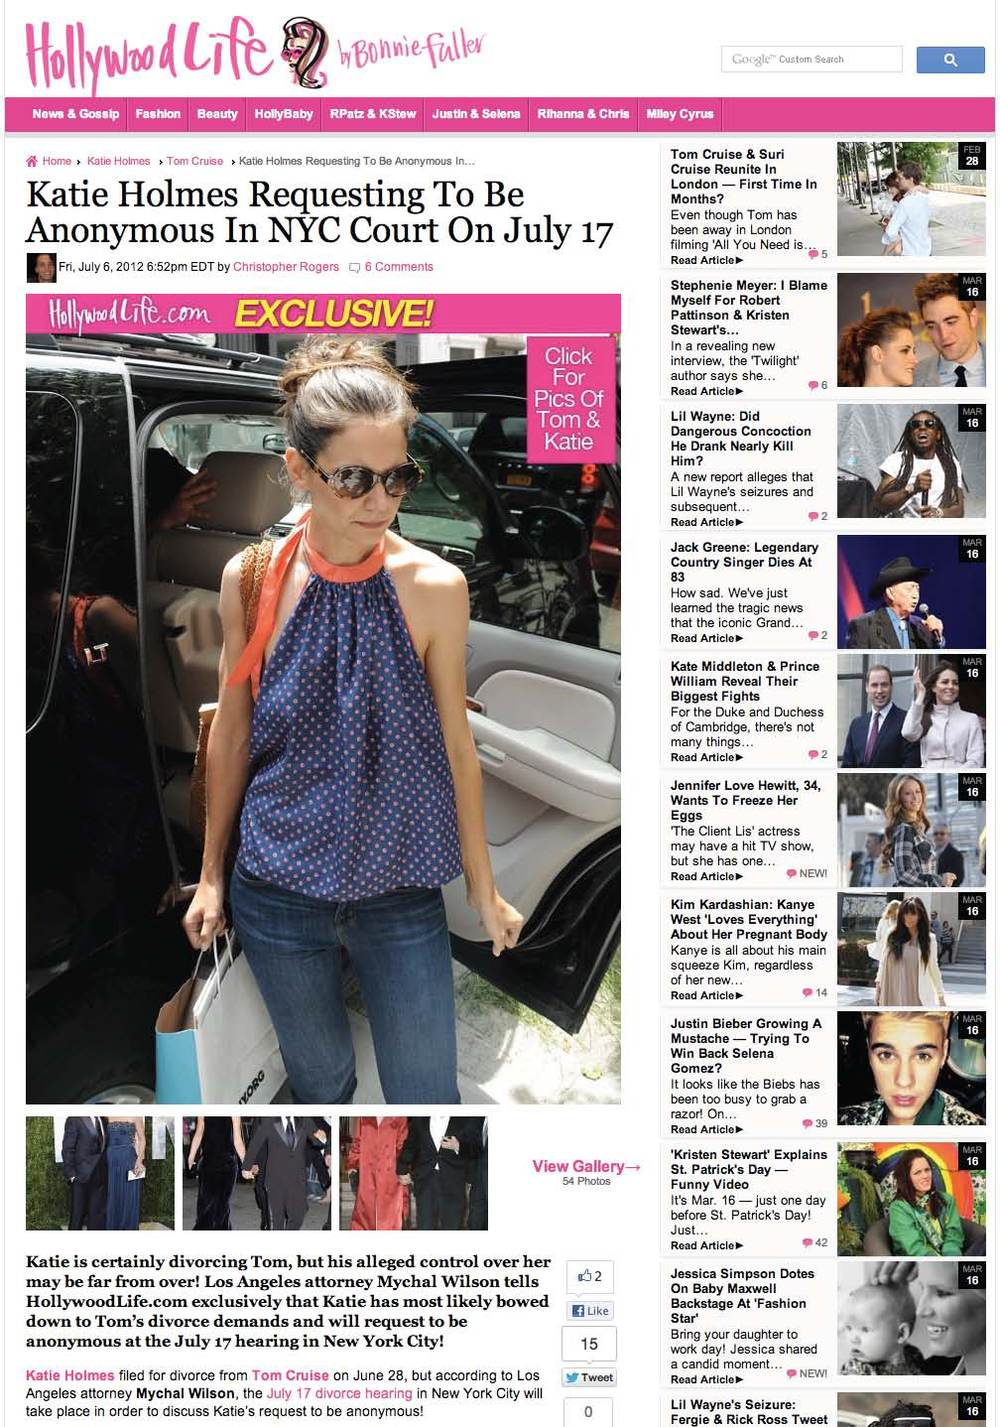 Katie Holmes Requesting To Be Anonymous In NYC Court On July 17